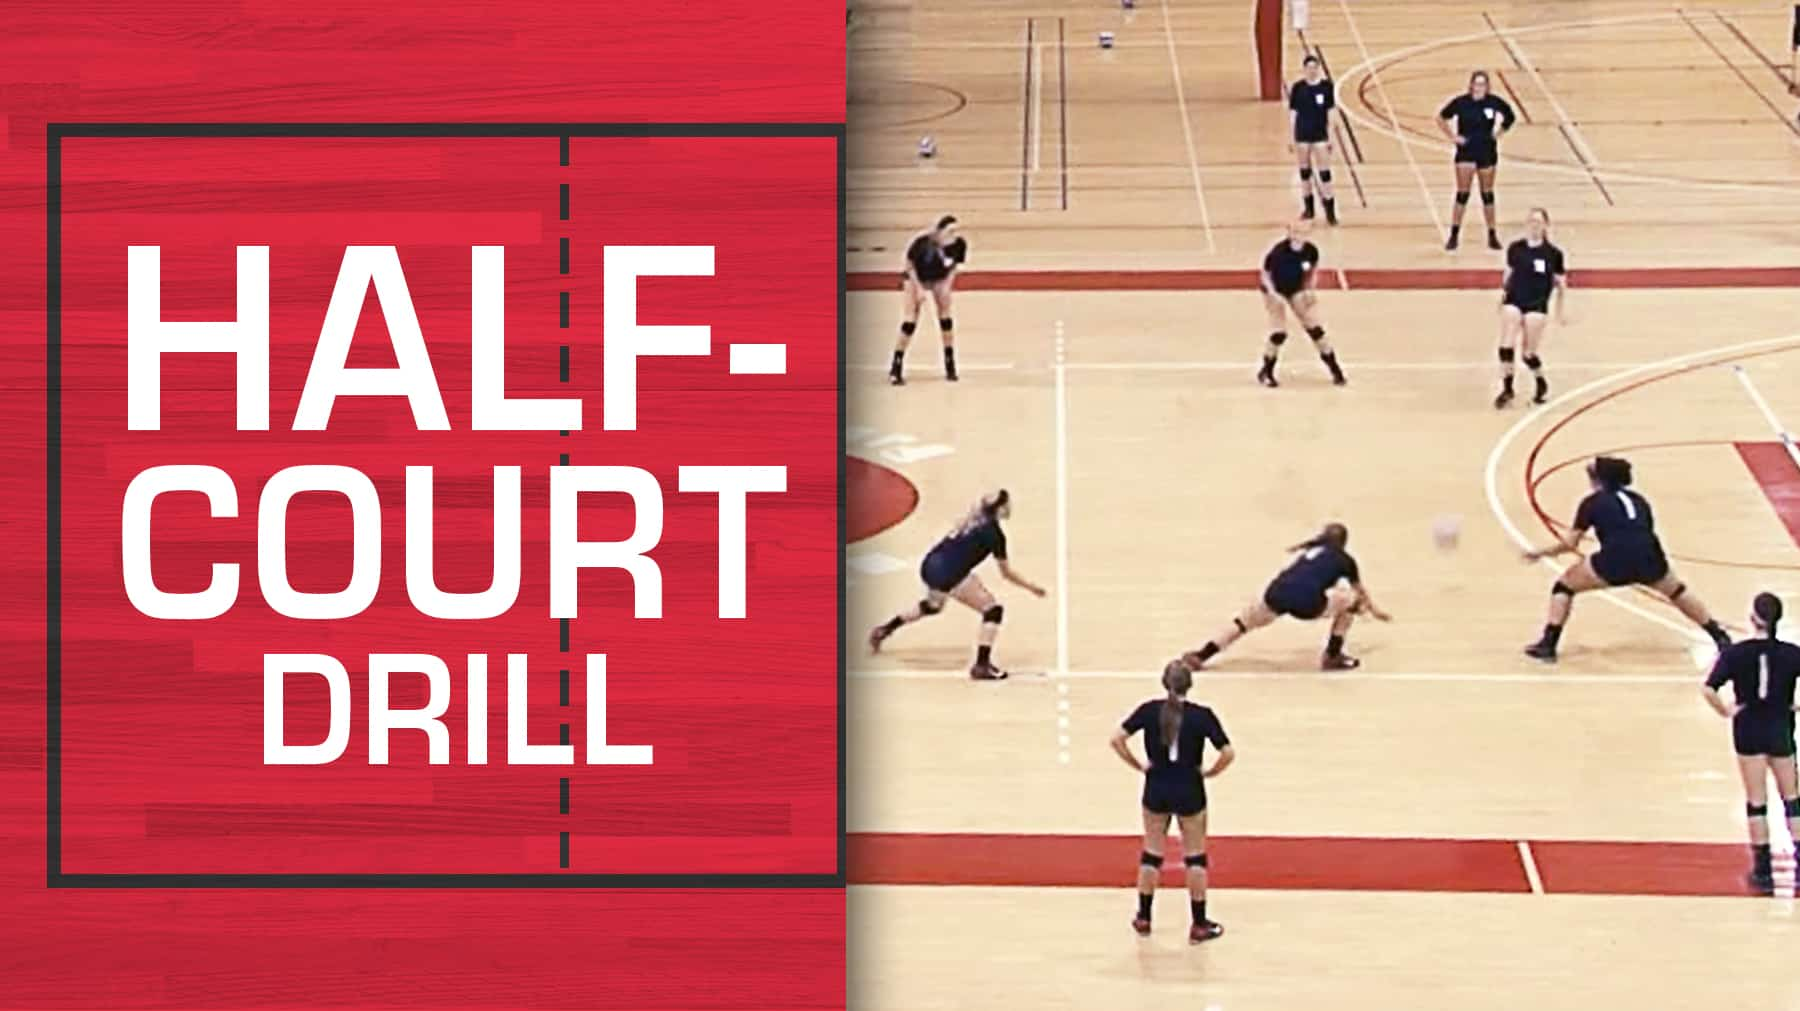 Half Court Drill For Creative Ball Control Training